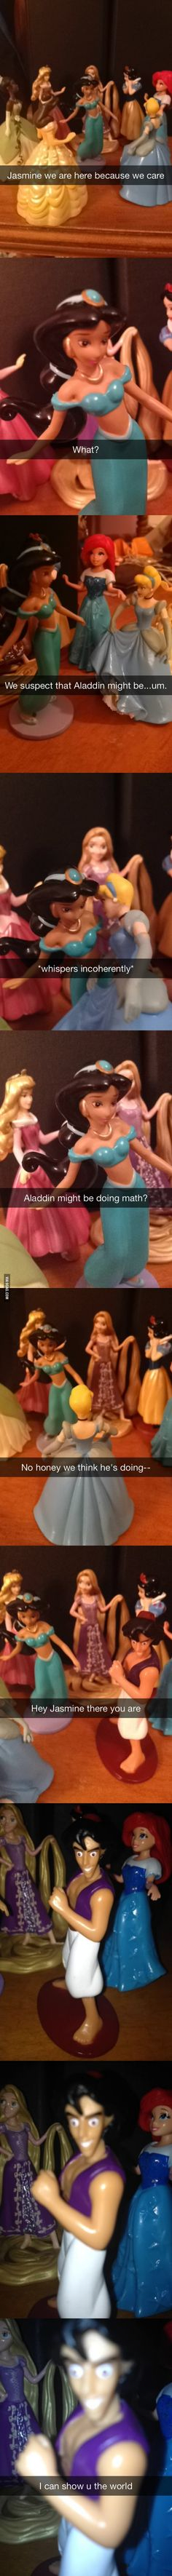 Jasmine, we suspect that Aladdin might be… - 9GAG